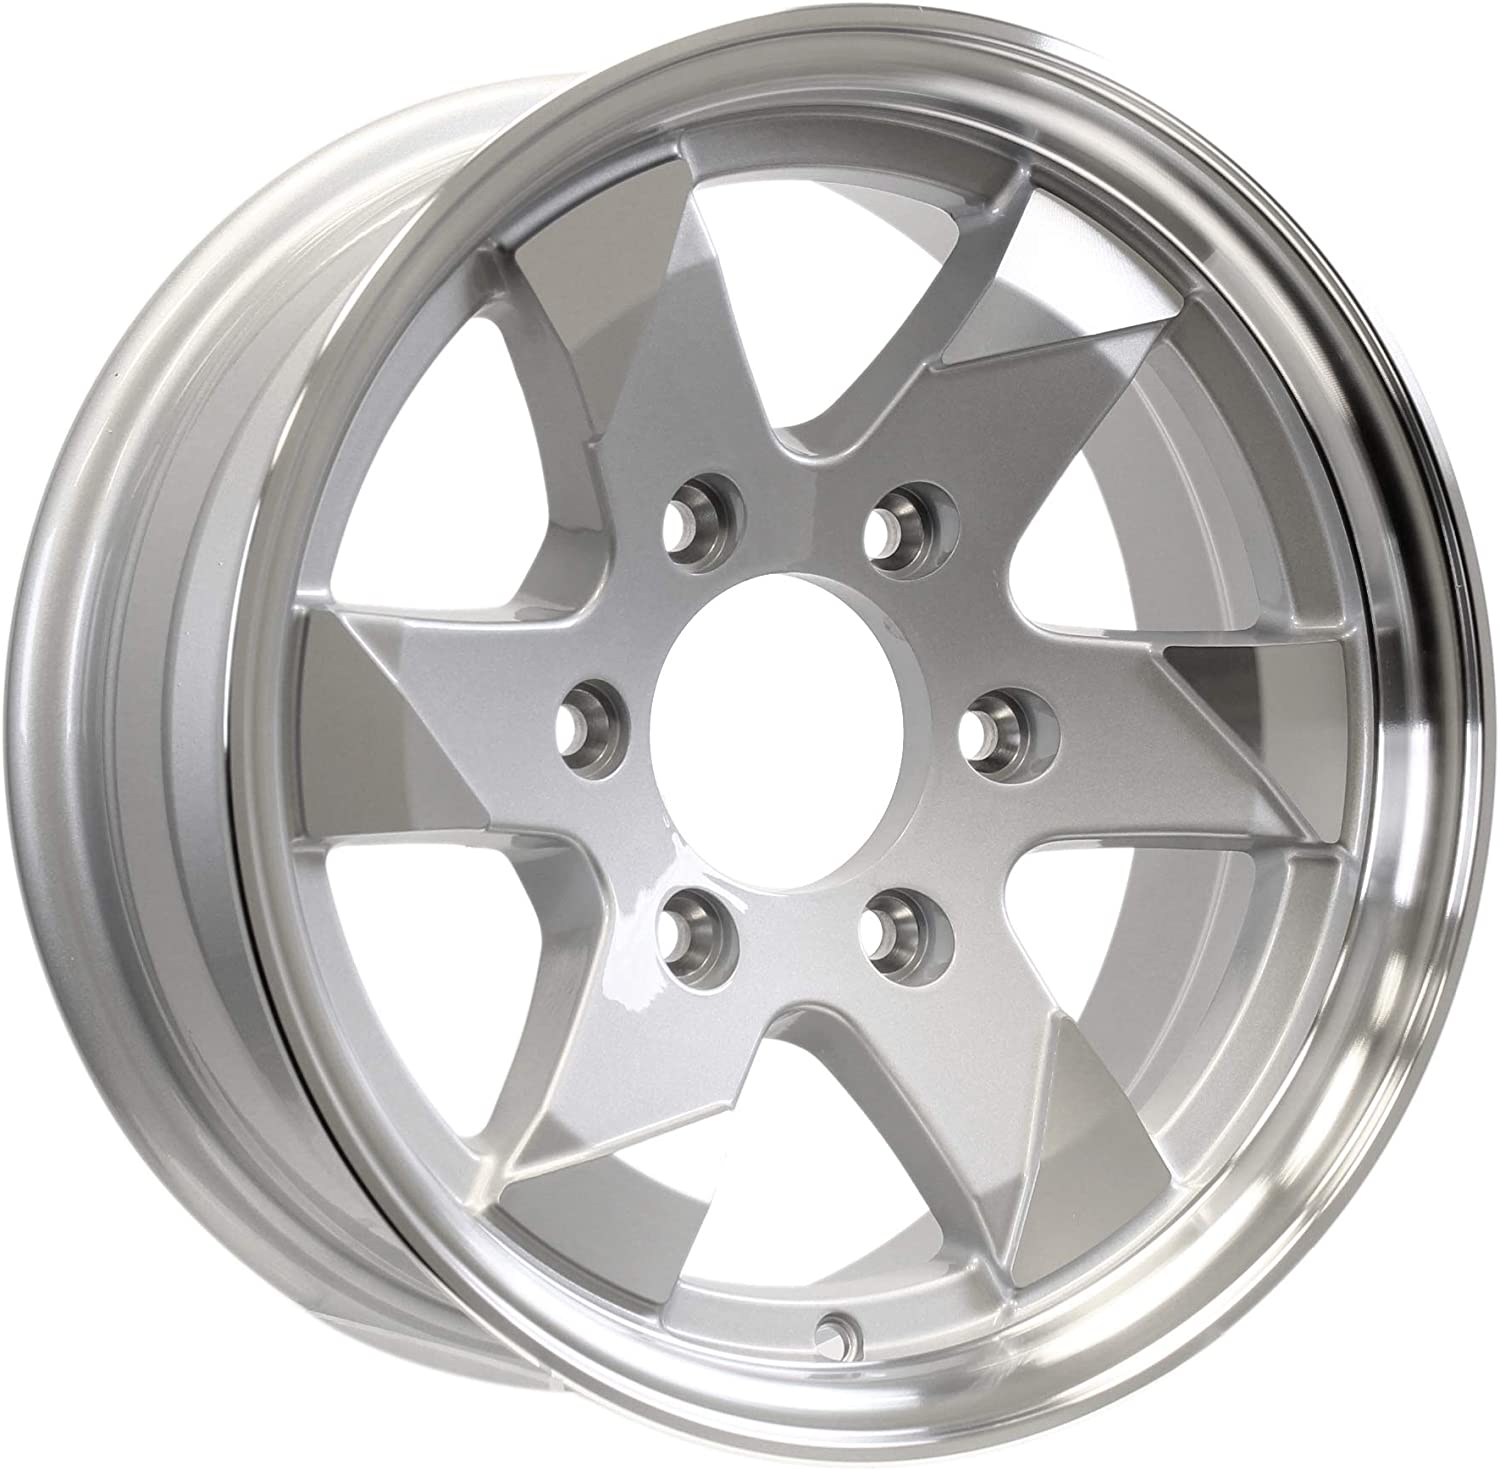 2-Pack Aluminum Trailer Wheel 15 Outlet ☆ Free Shipping In. On 6 5.5 Silver Ascent online shopping Lug